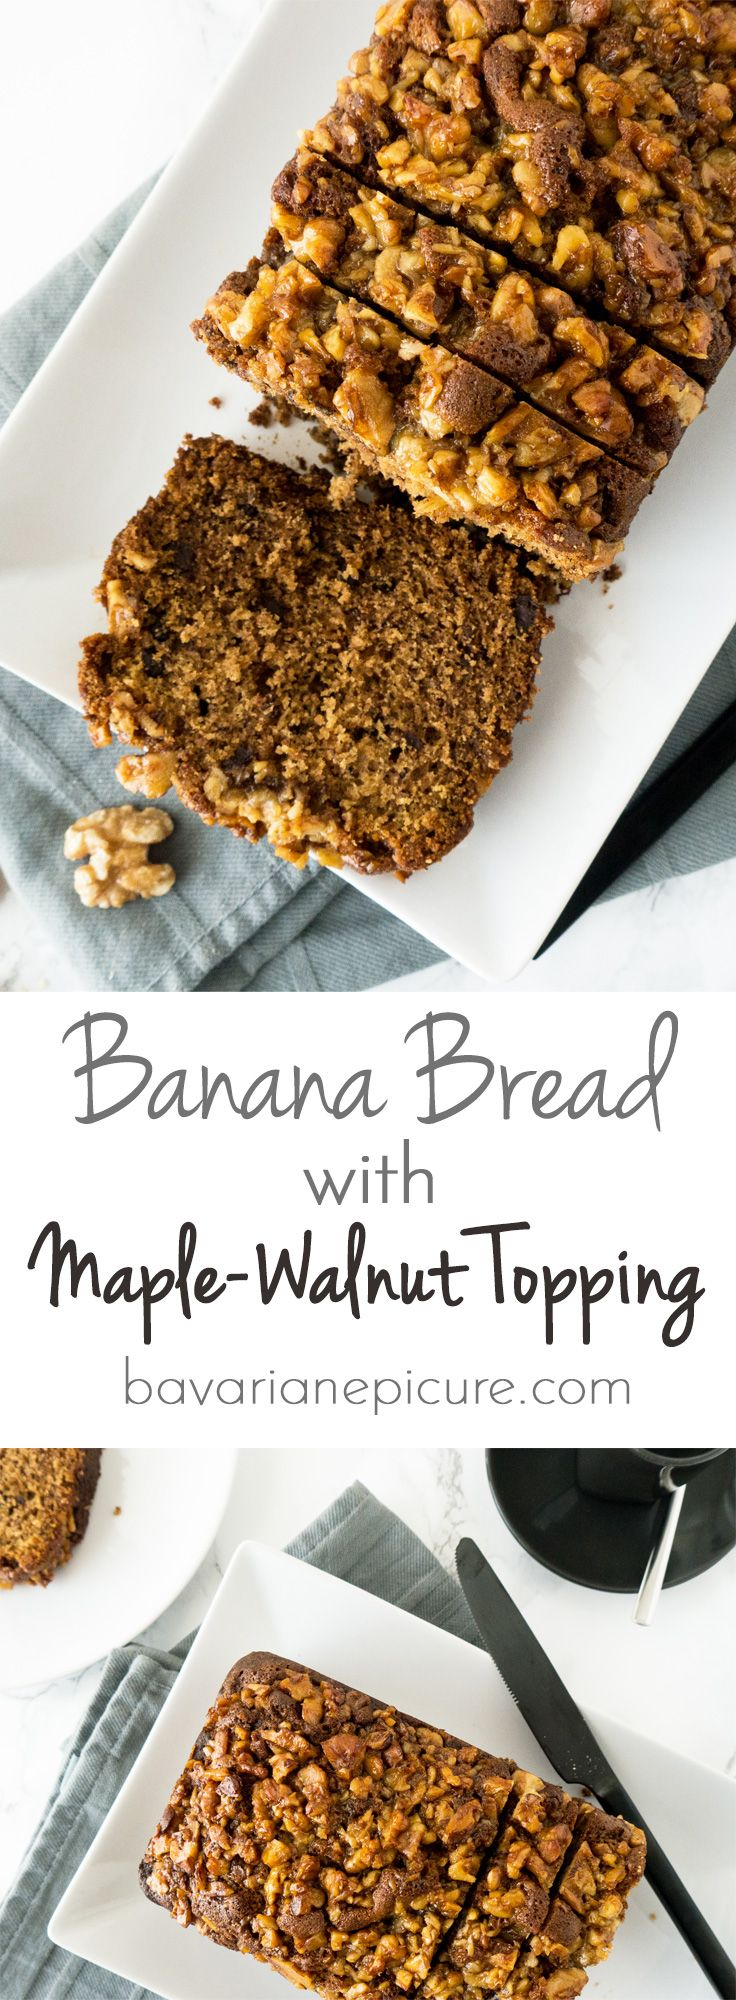 My Banana Bread has a crunchy Maple-Walnut Topping which adds a new twist to my favorite banana bread recipe!